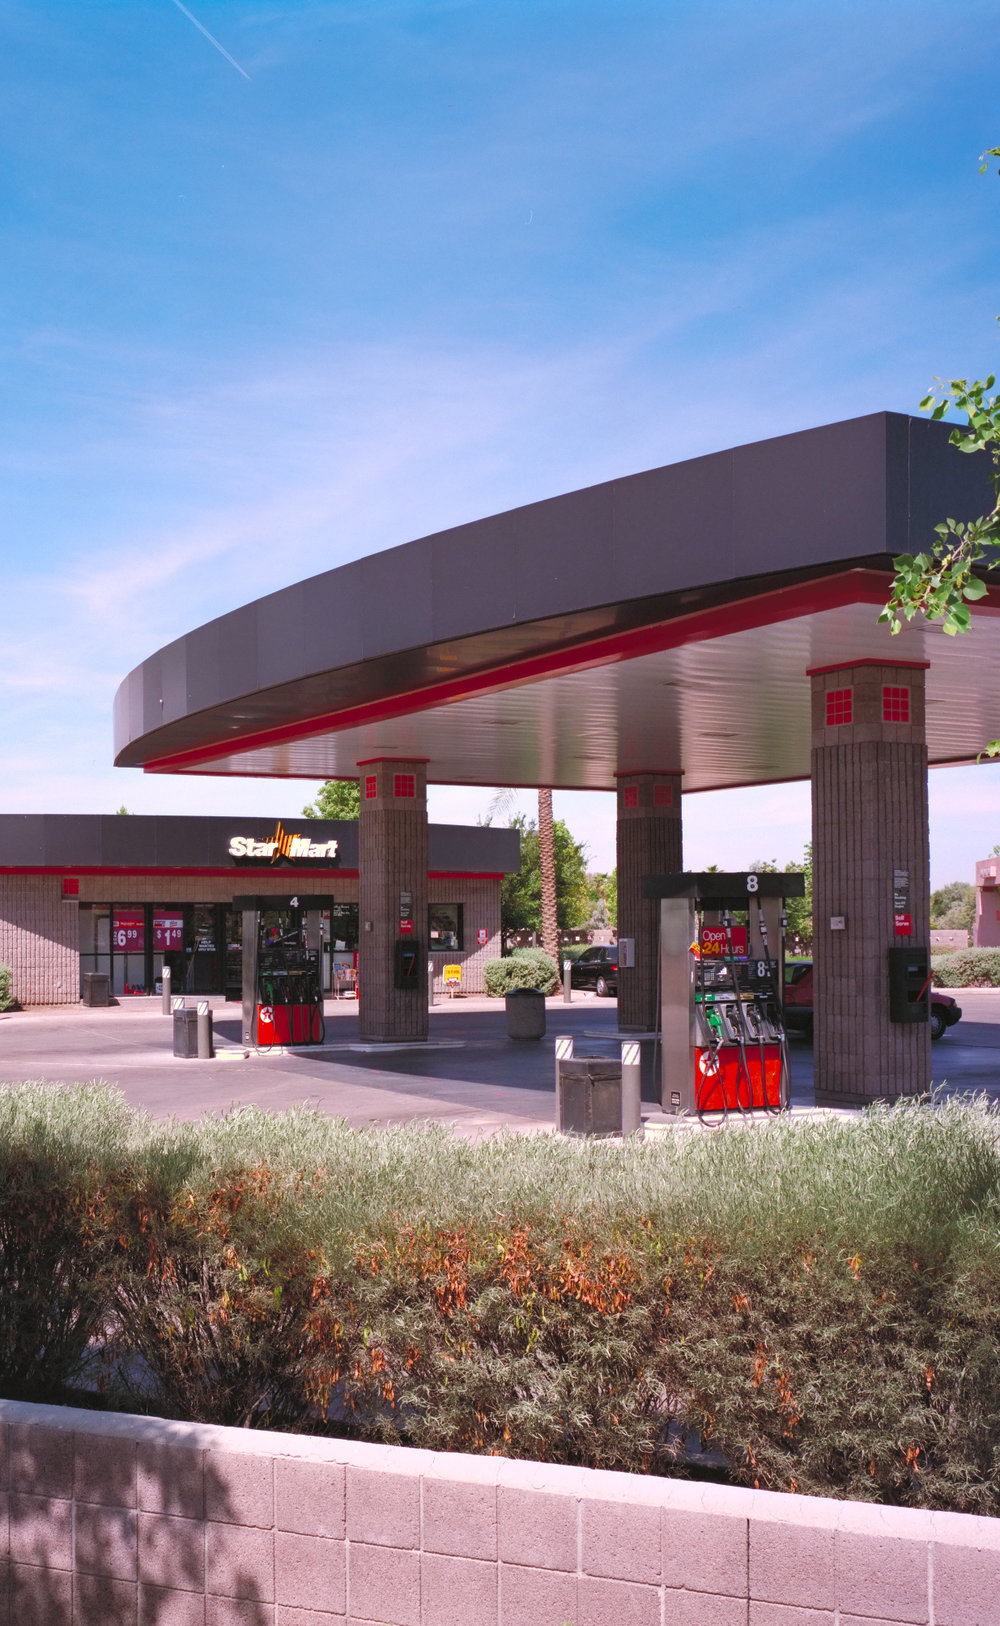 1990 |  First Design Award Architekton wins the Tempe Beautification Award for Star Mart at Baseline and Price.